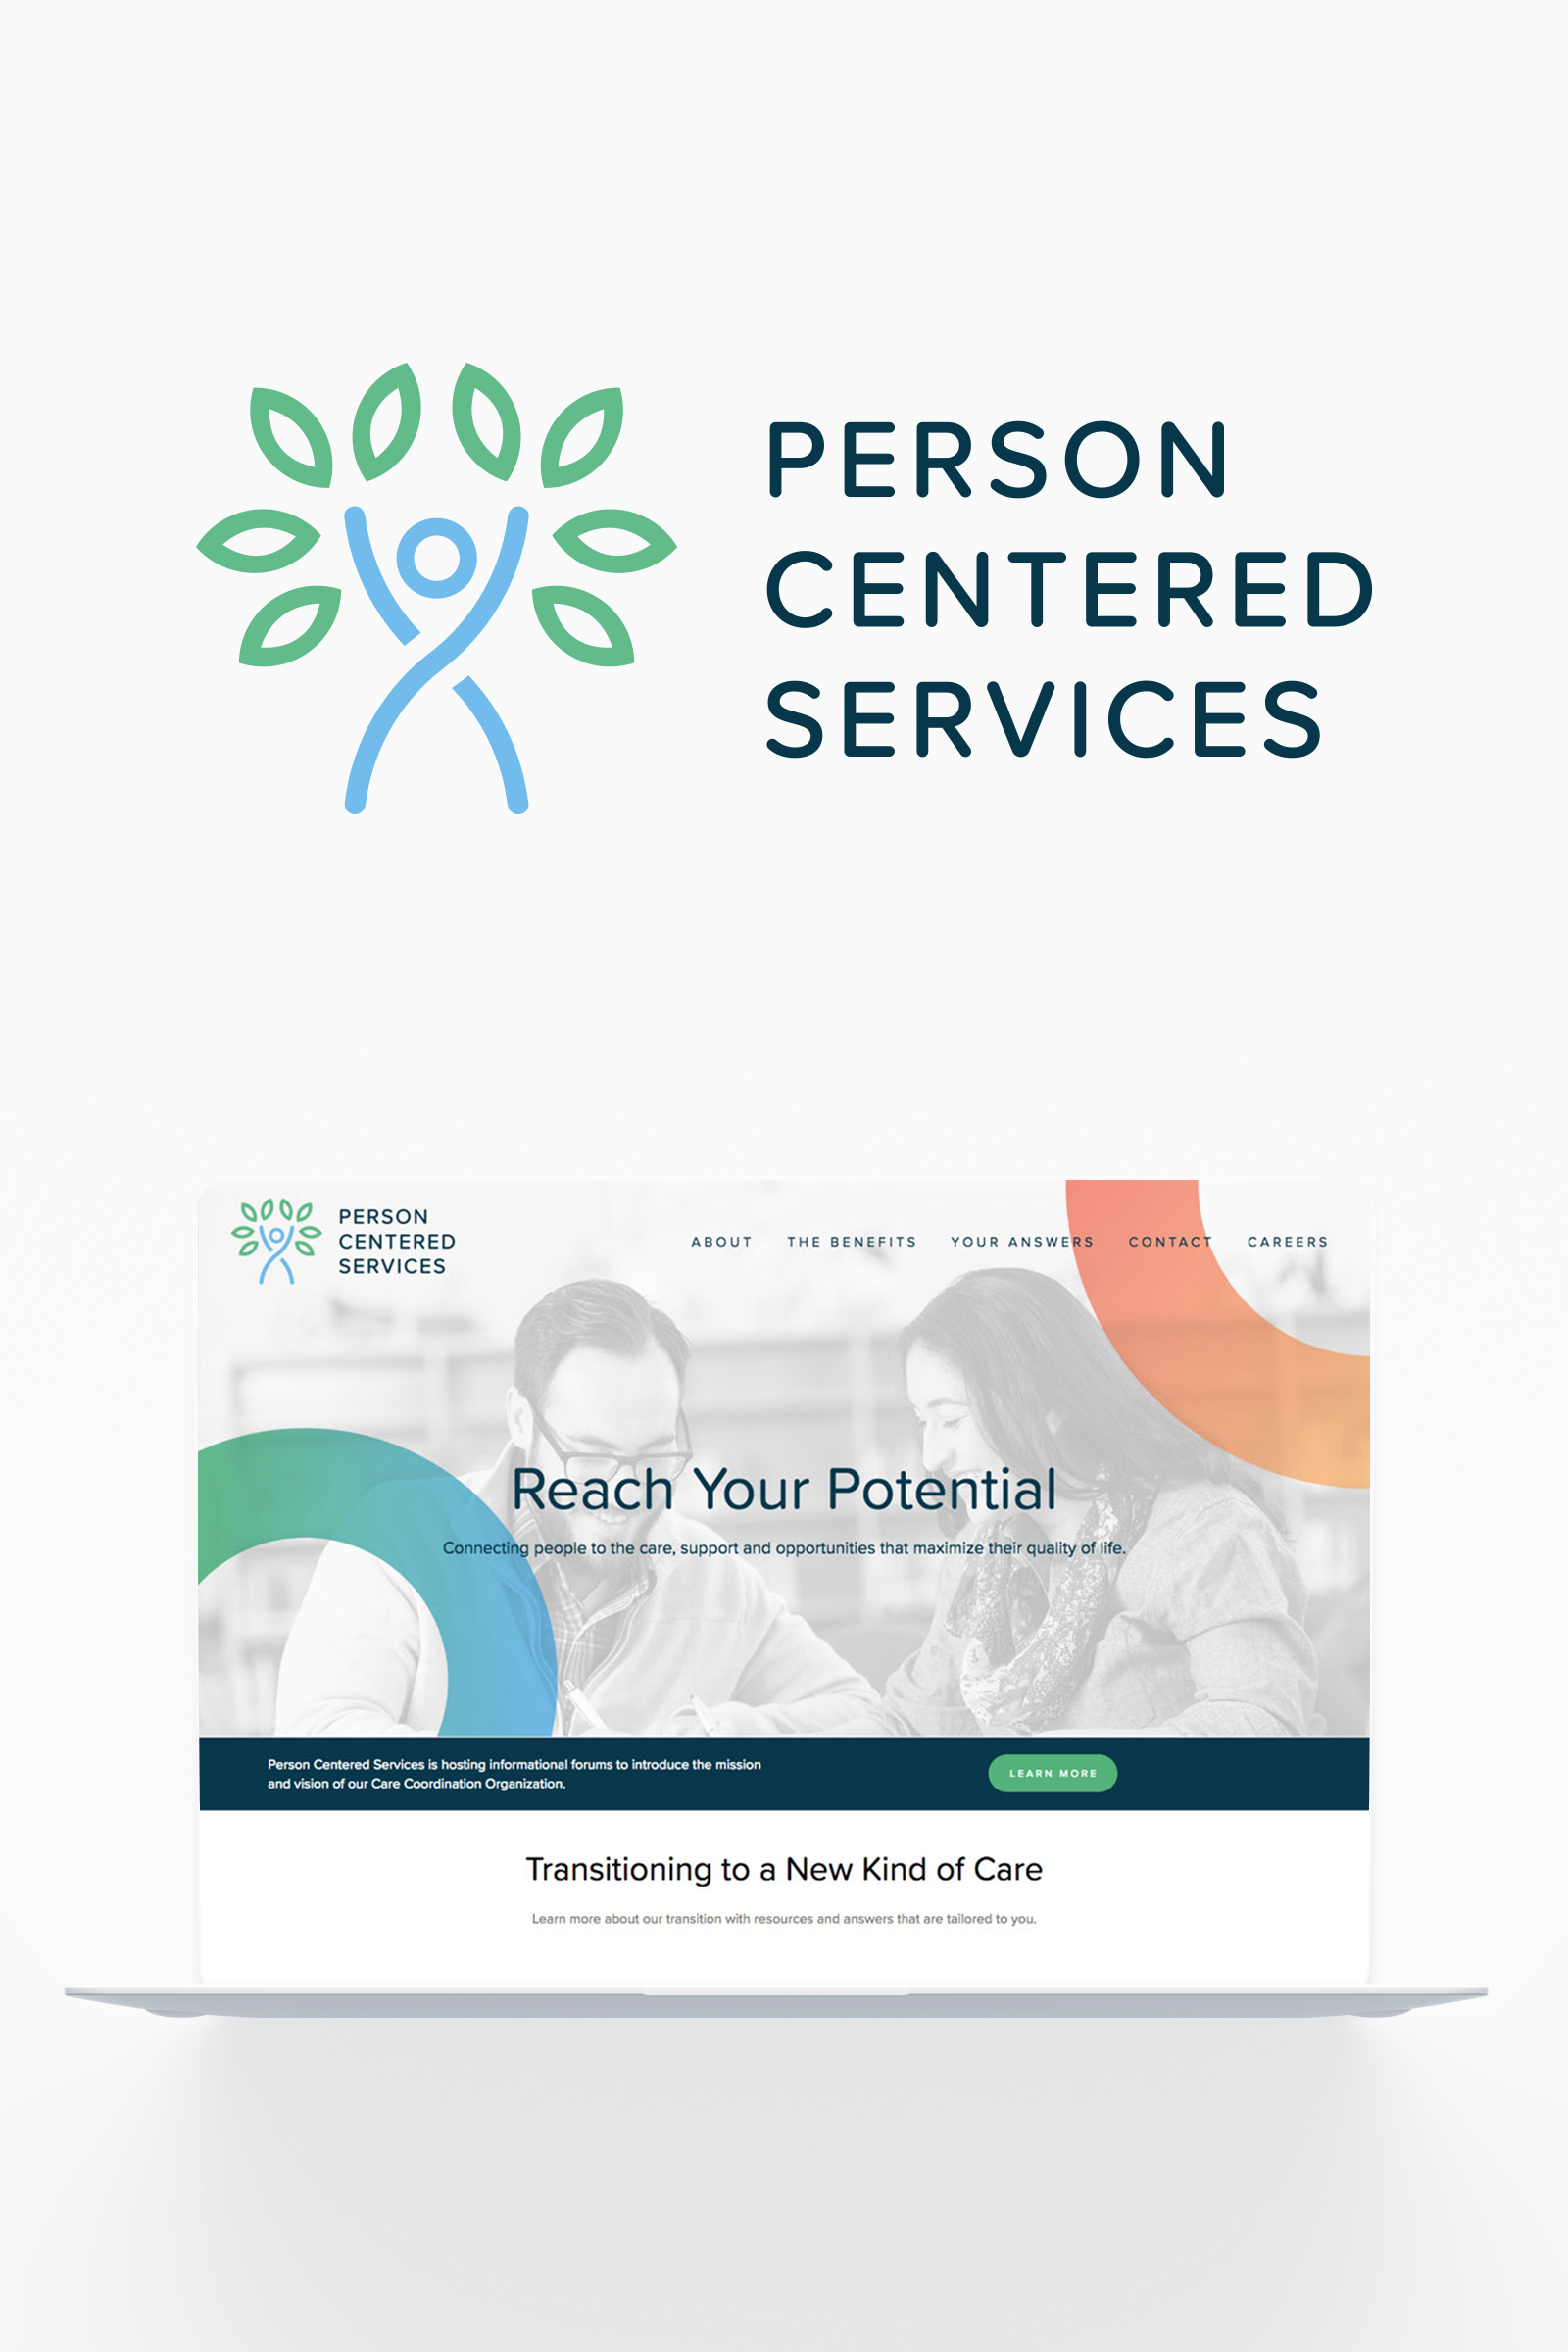 Person Centered Services Case Study